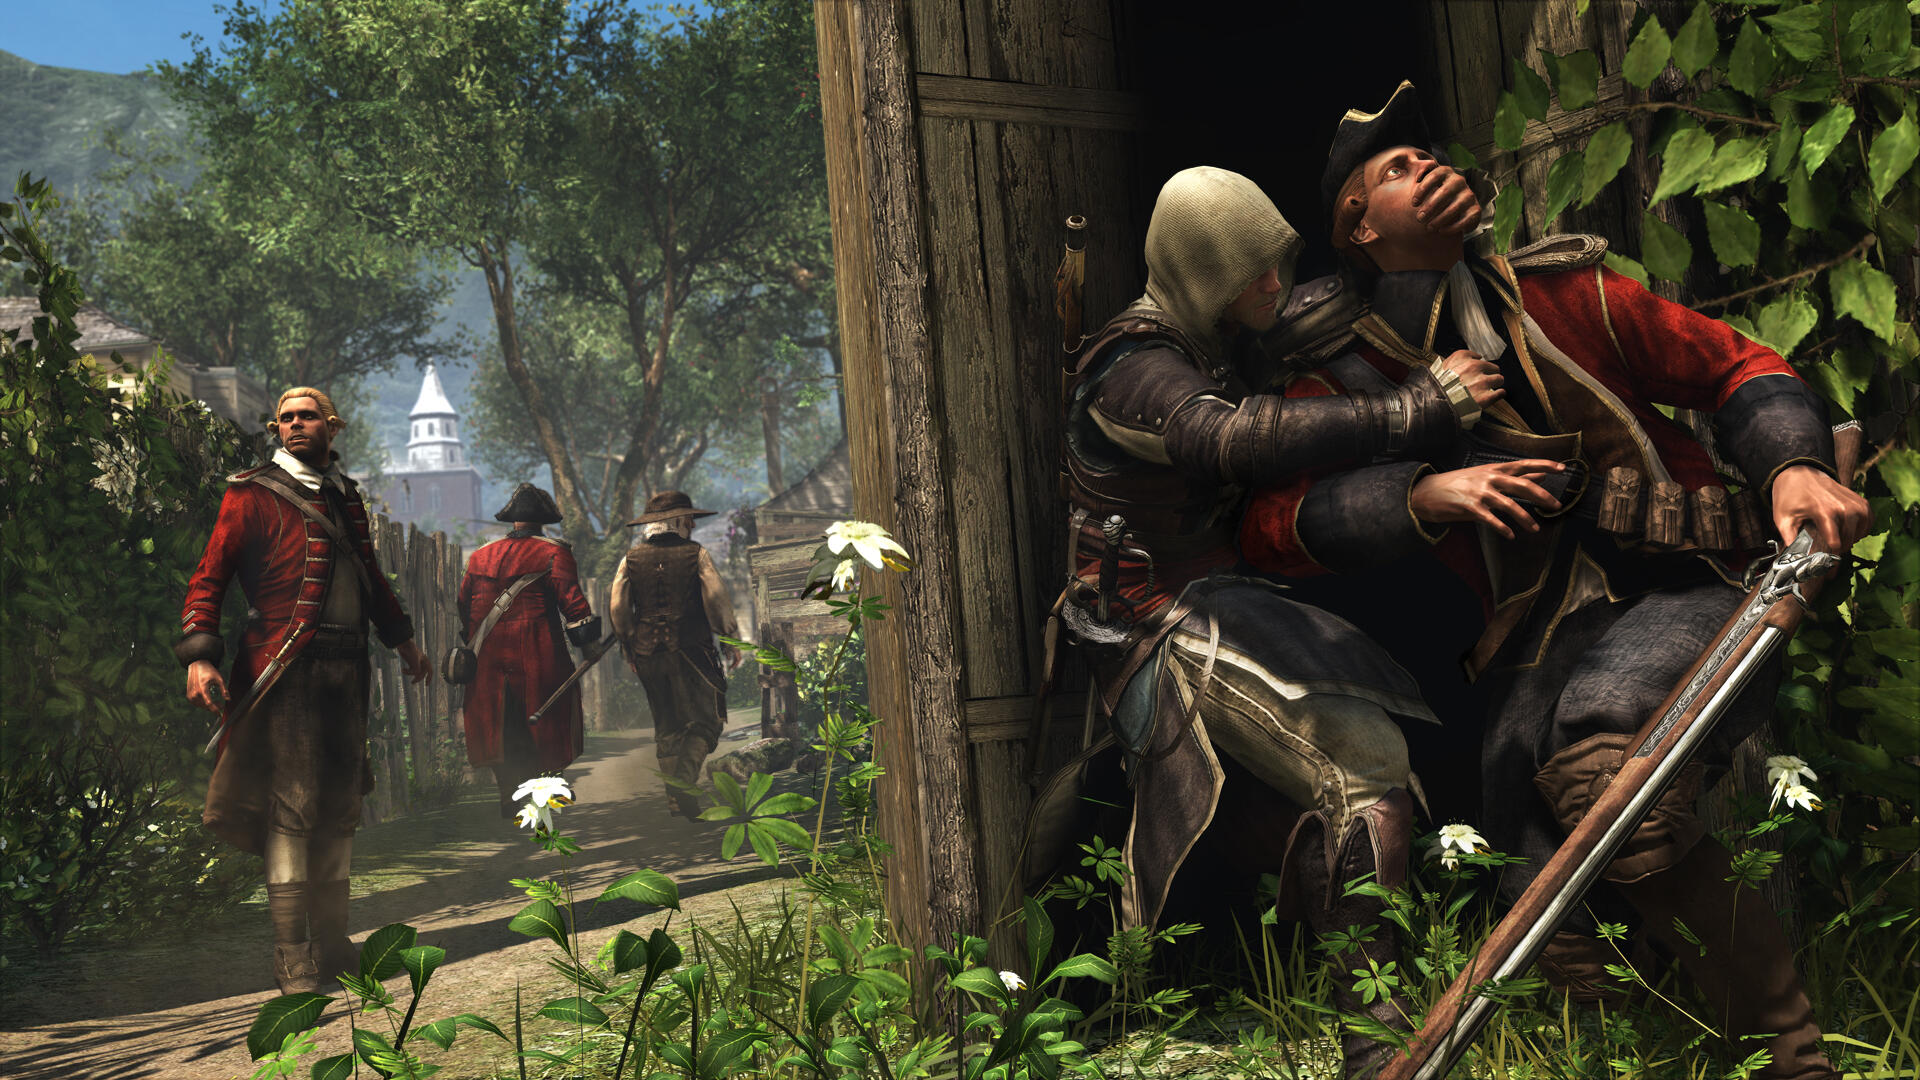 Assassin's Creed 4 Walkthrough: How to Complete Sequences 07, 08 and 09